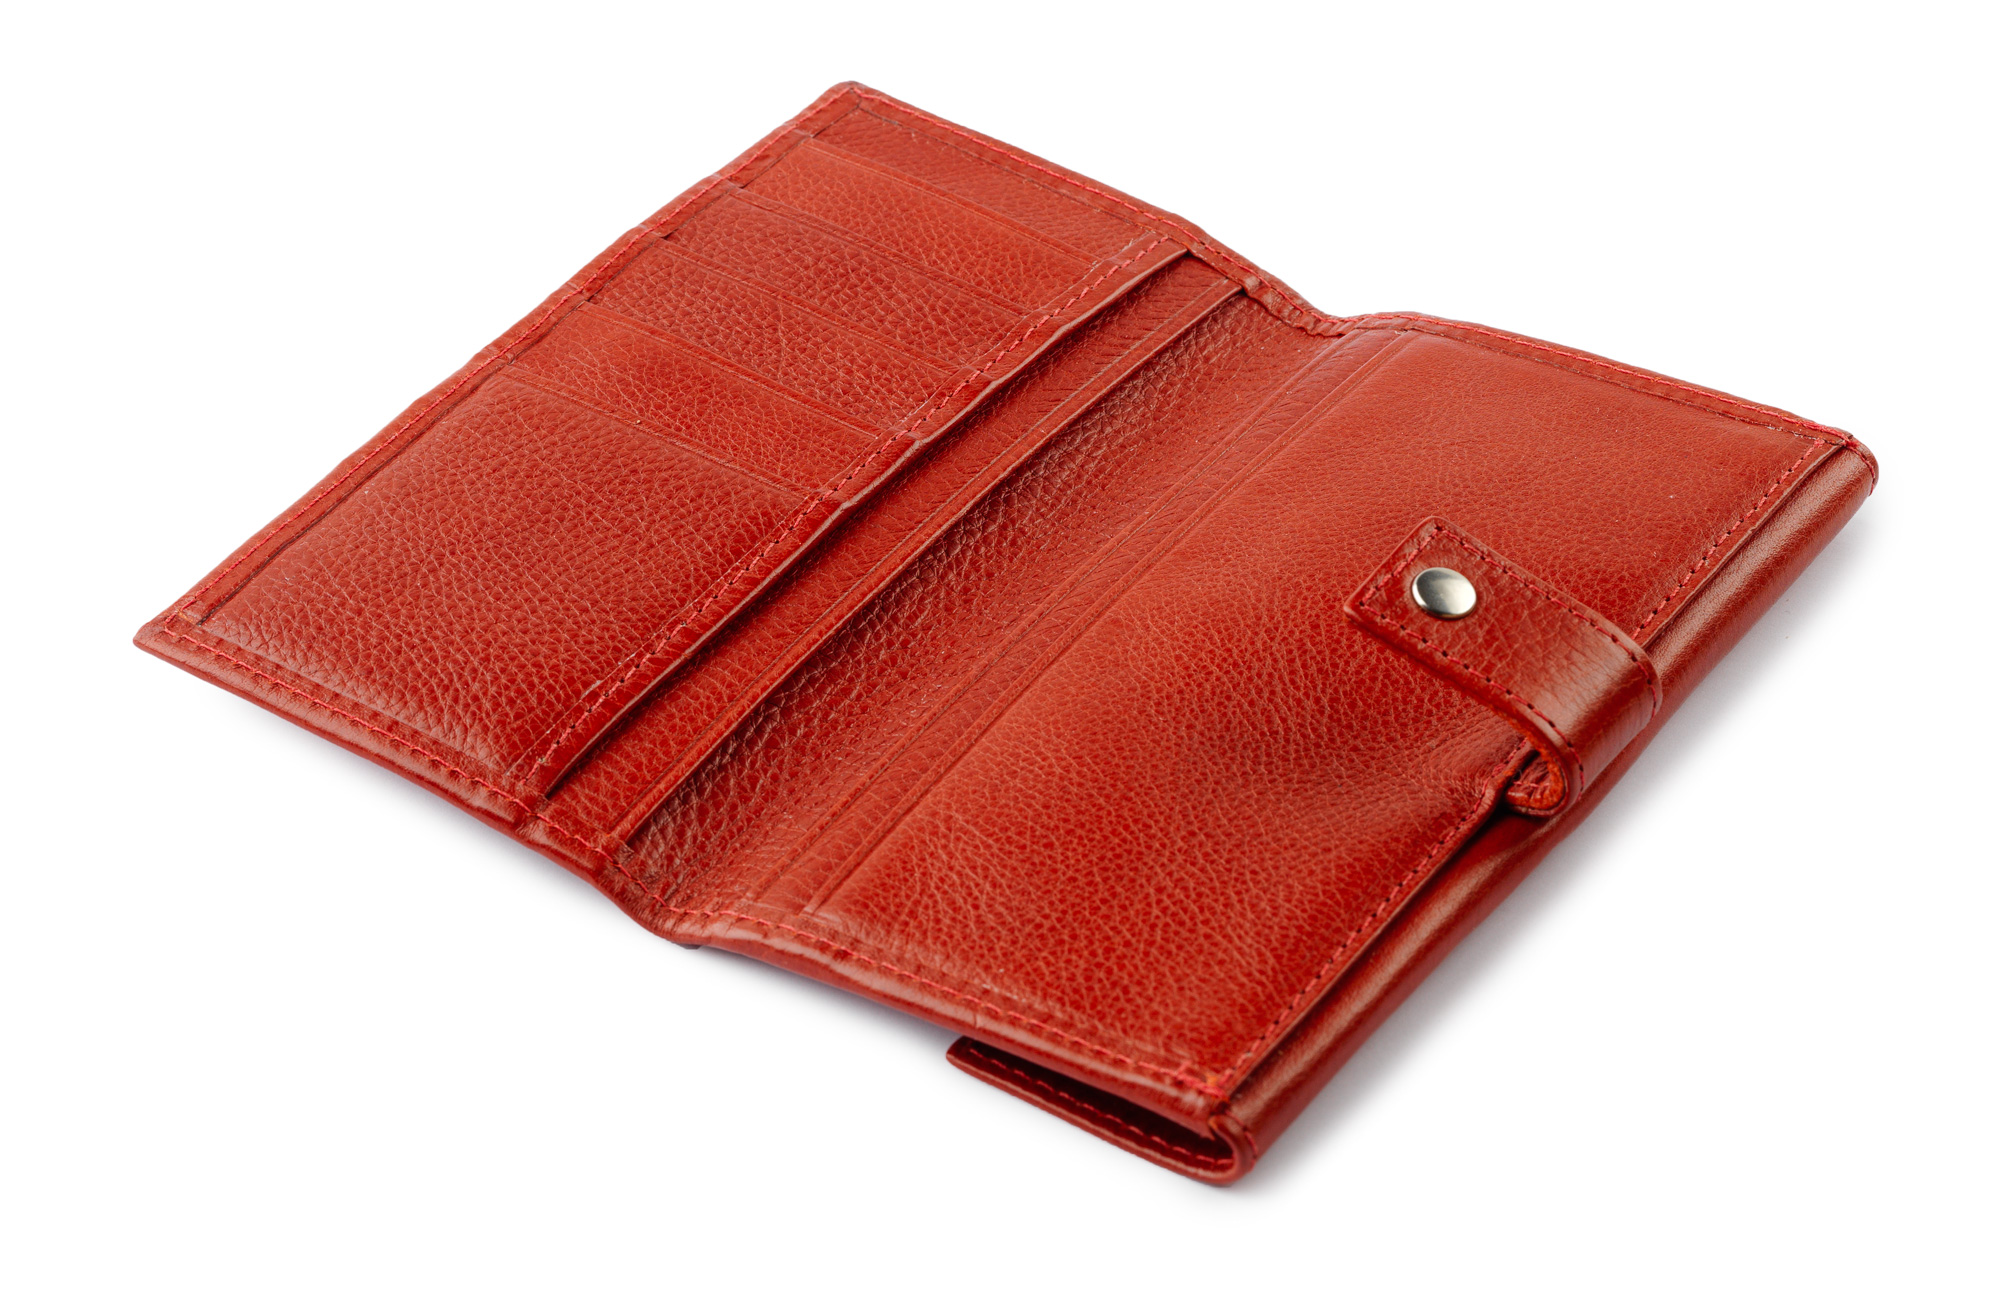 Holden Ladies Leather Wallet Red Inside Copy QC.jpg